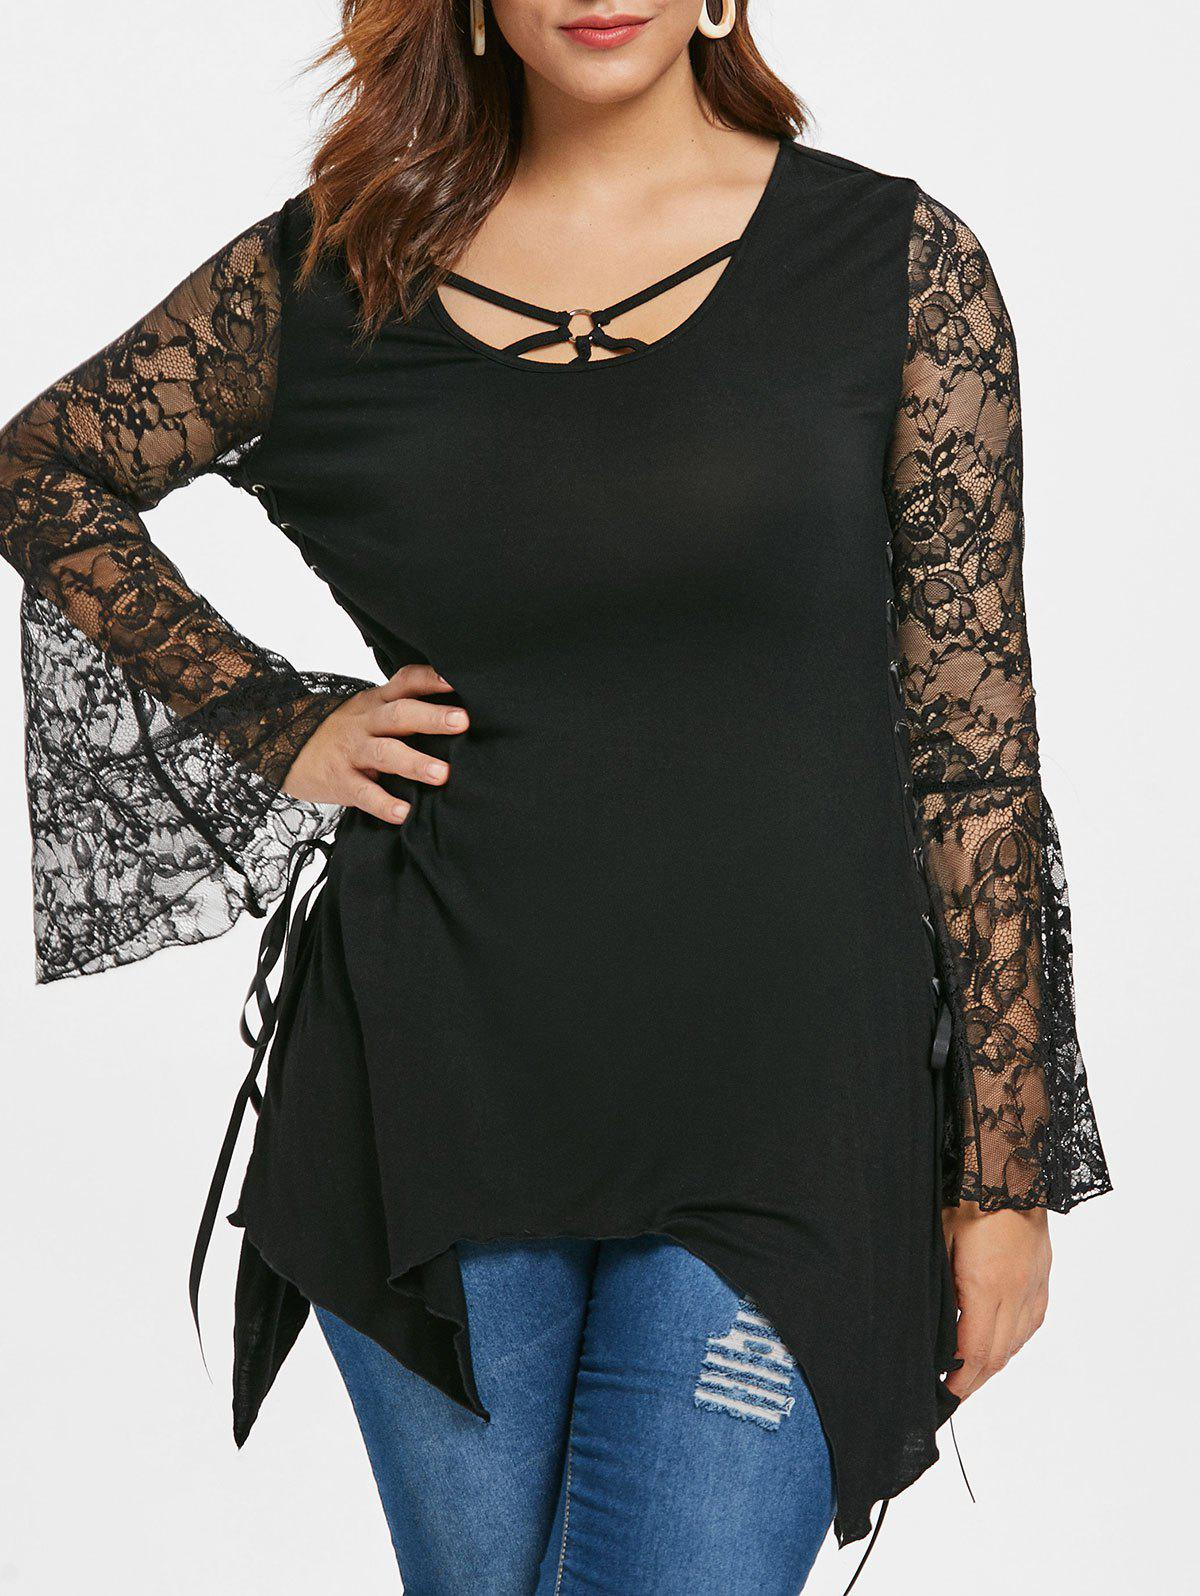 Plus Size Halloween Bell Sleeve Lace Up T-shirt - BLACK L